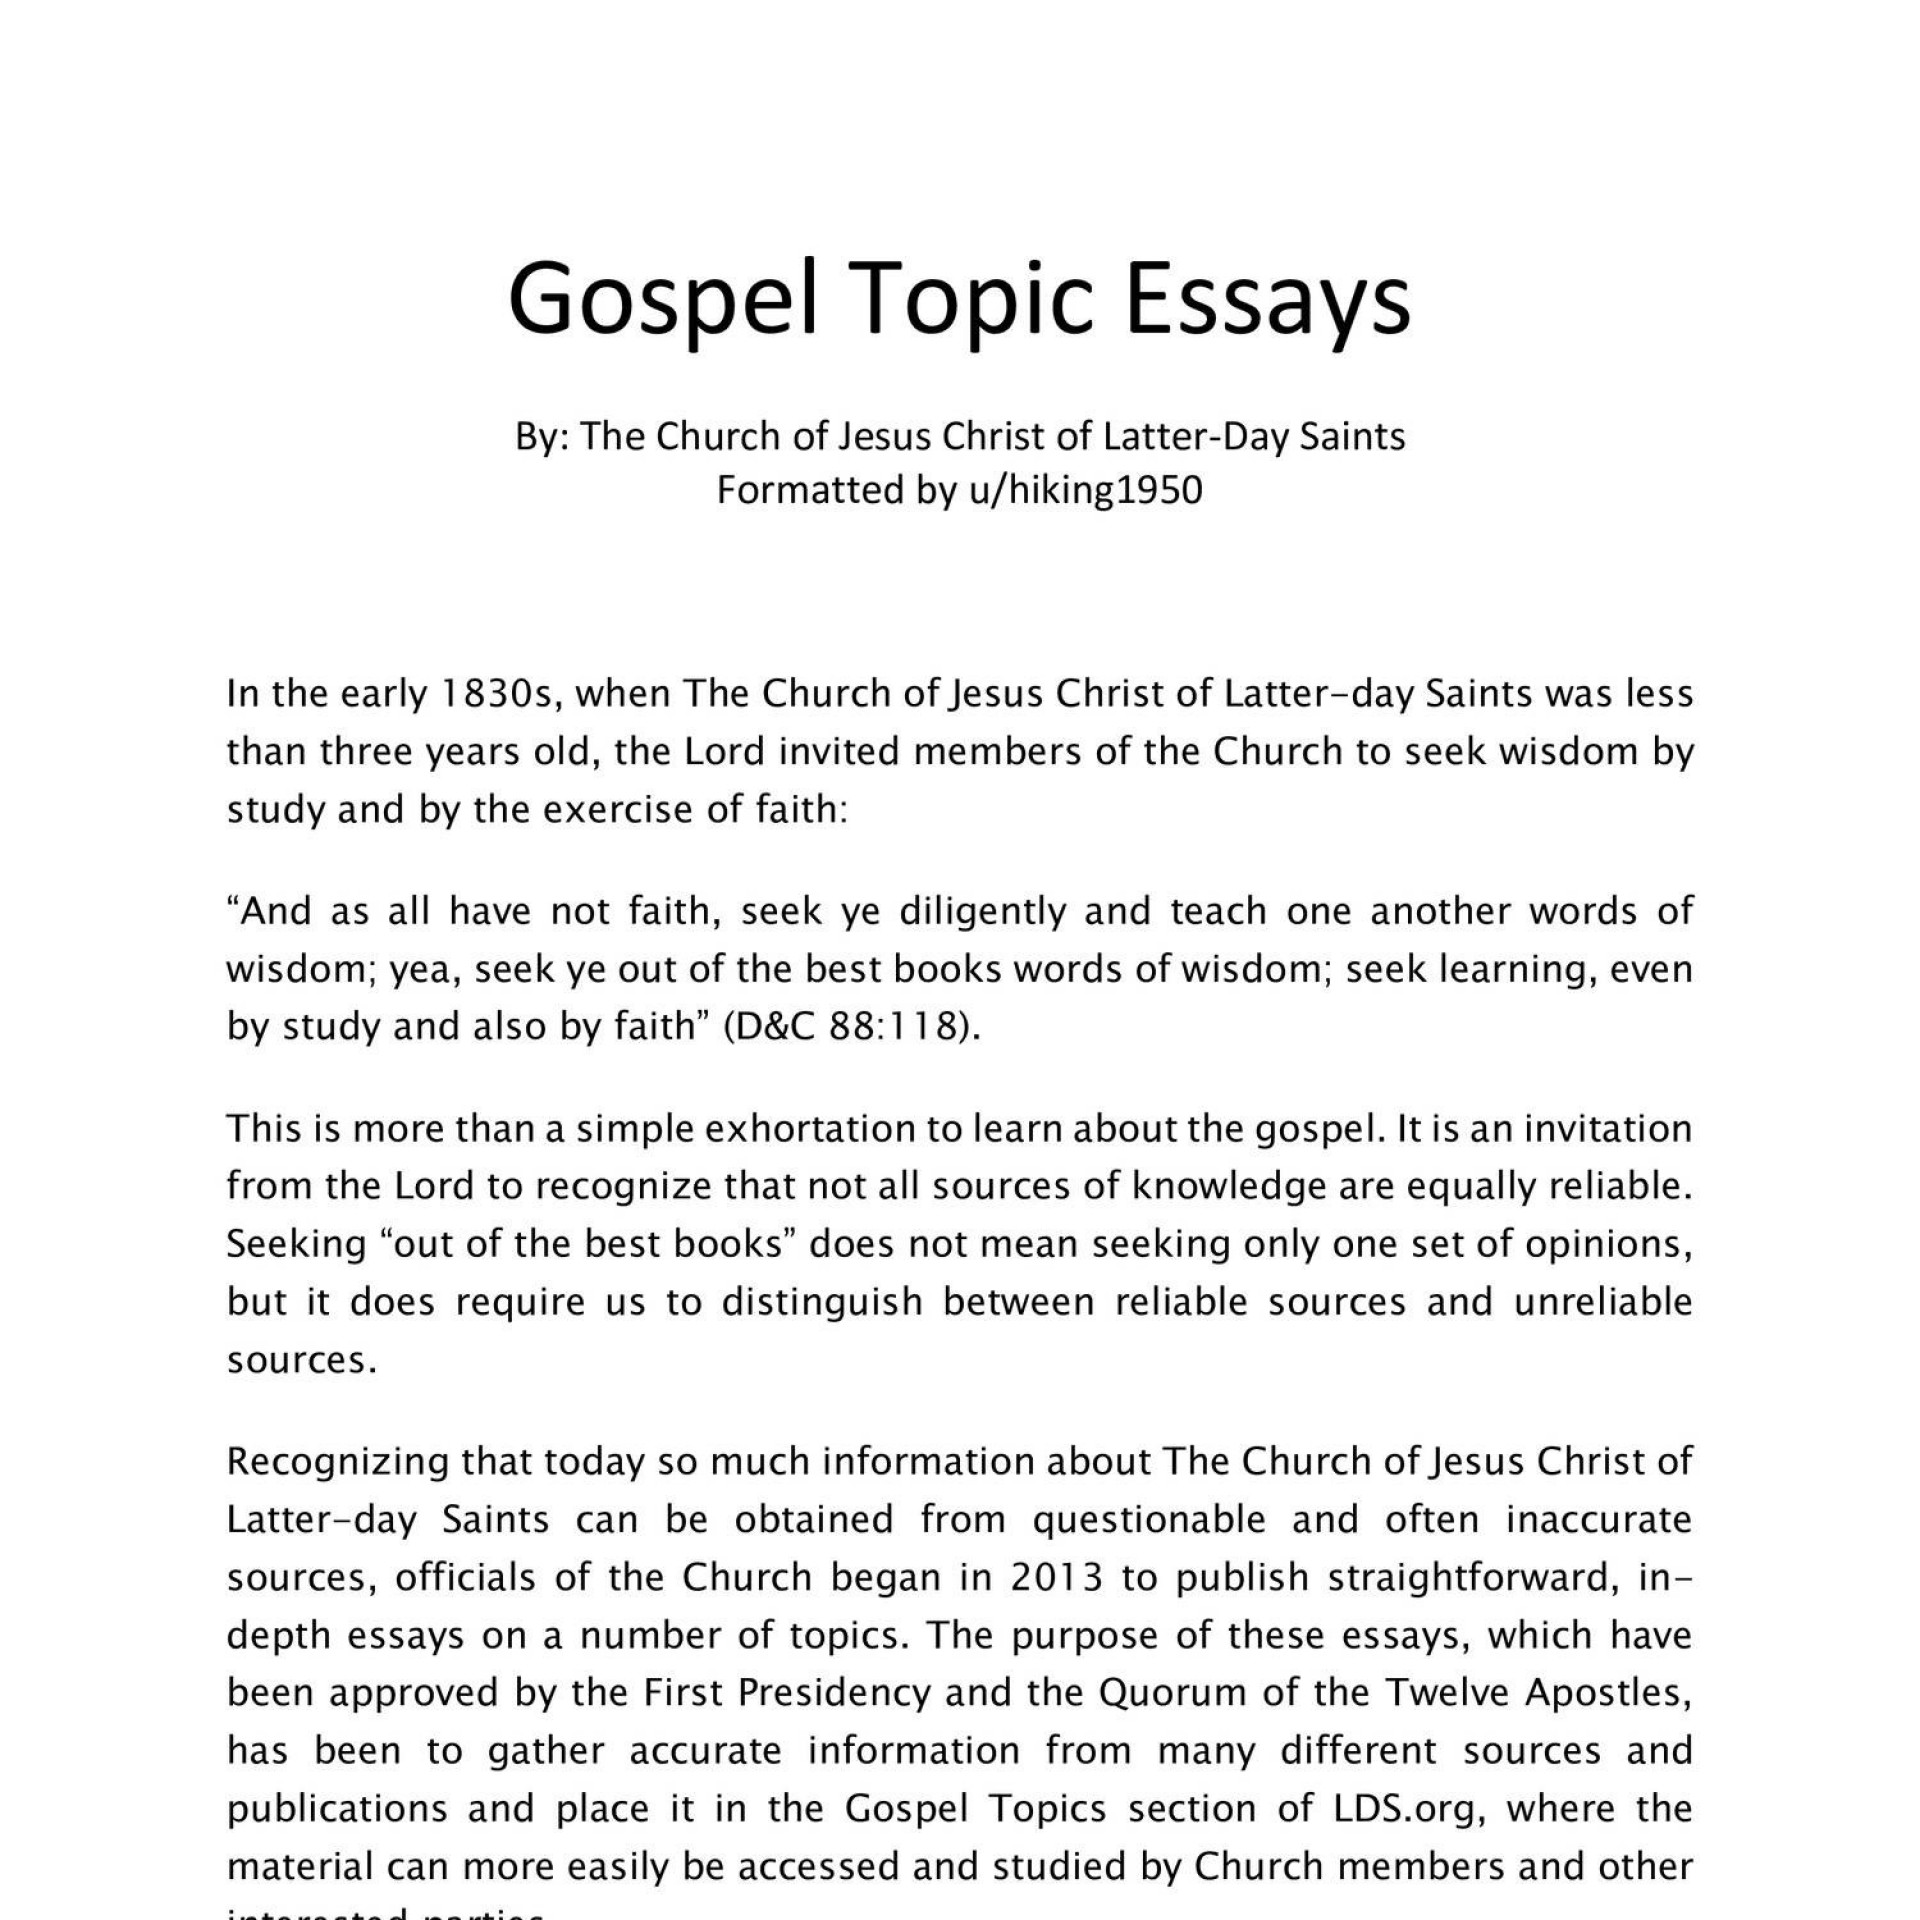 009 Gospel Topics Essays Topic Essay Outstanding Pdf Plural Marriage Becoming Like God 1920